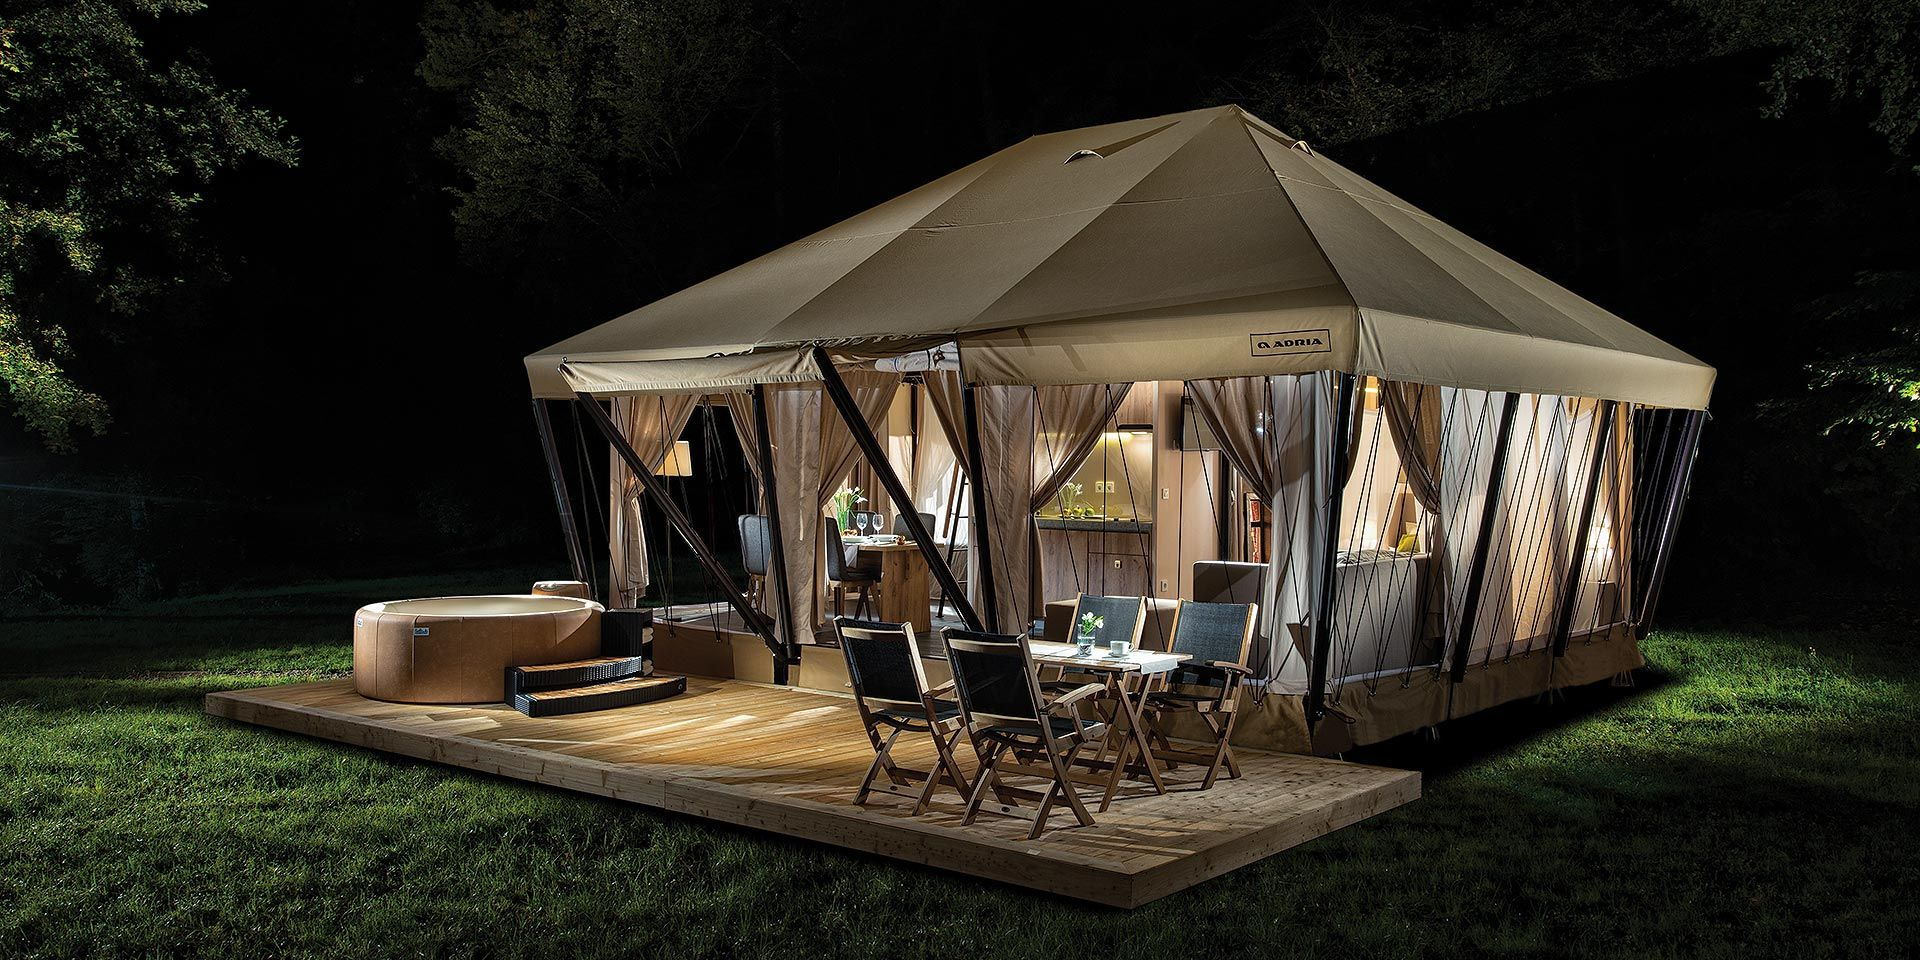 Experts in innovative projects in gl&ing tourism. Our projects Garden Village Bled Herbal gl&ing Ljubno Adria gl&ing tent were developed from the ... & GlamPro - Glamping projects and marketing | GLAMPING | Pinterest ...